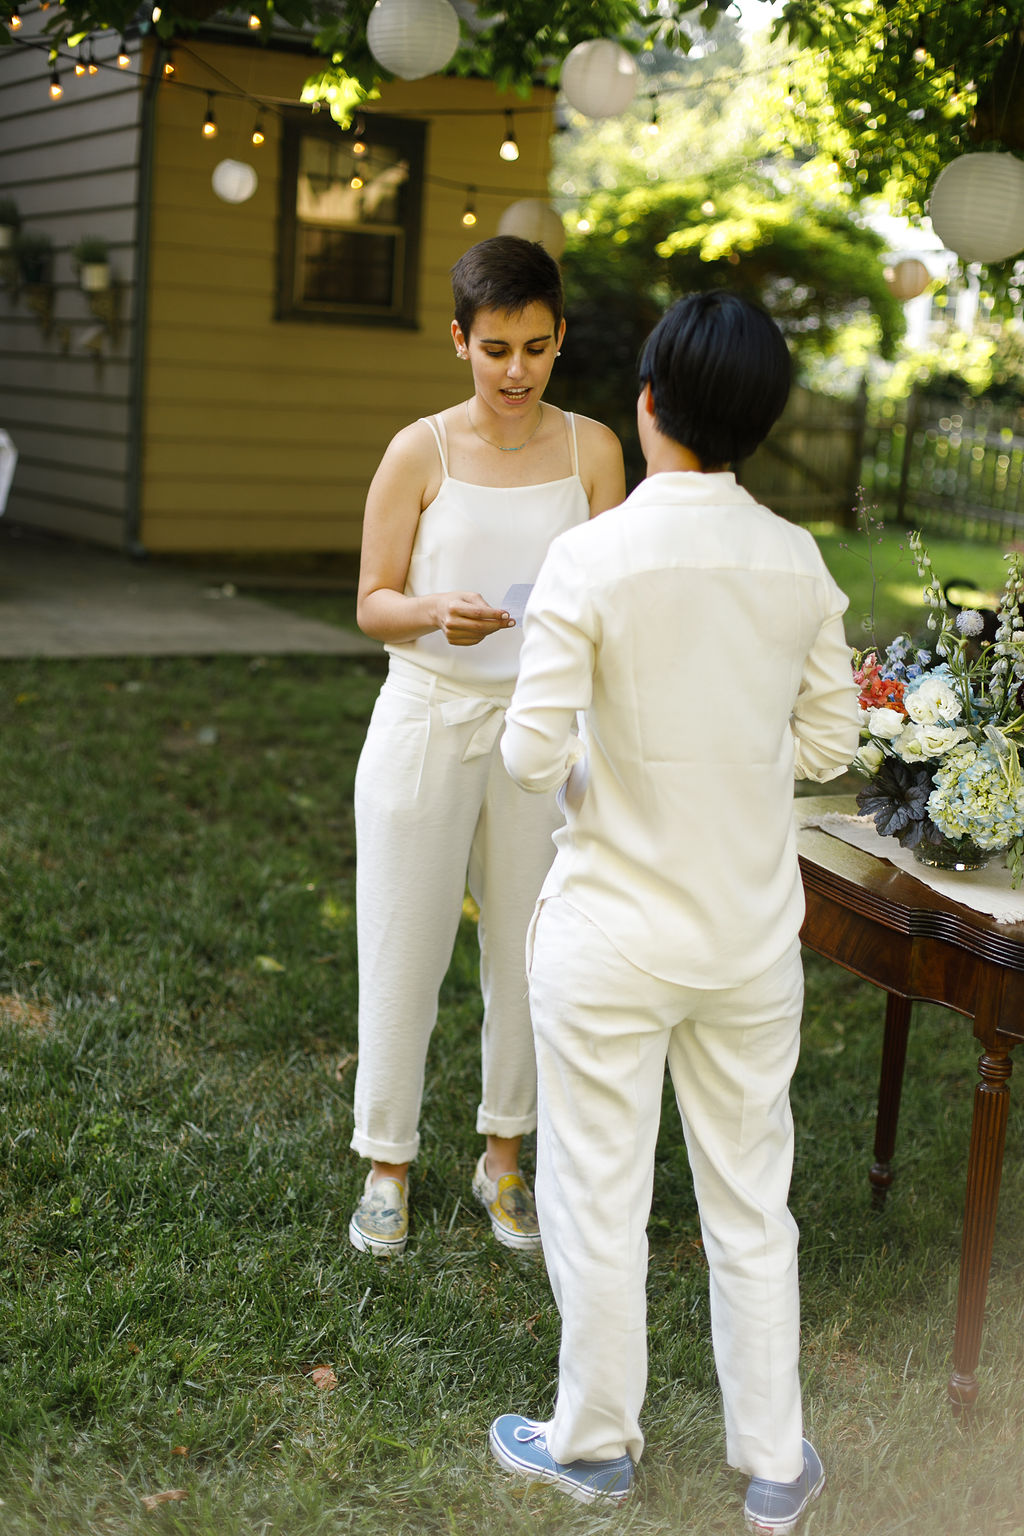 Philly Area Backyard LGBTQ Micro Wedding 26.jpg